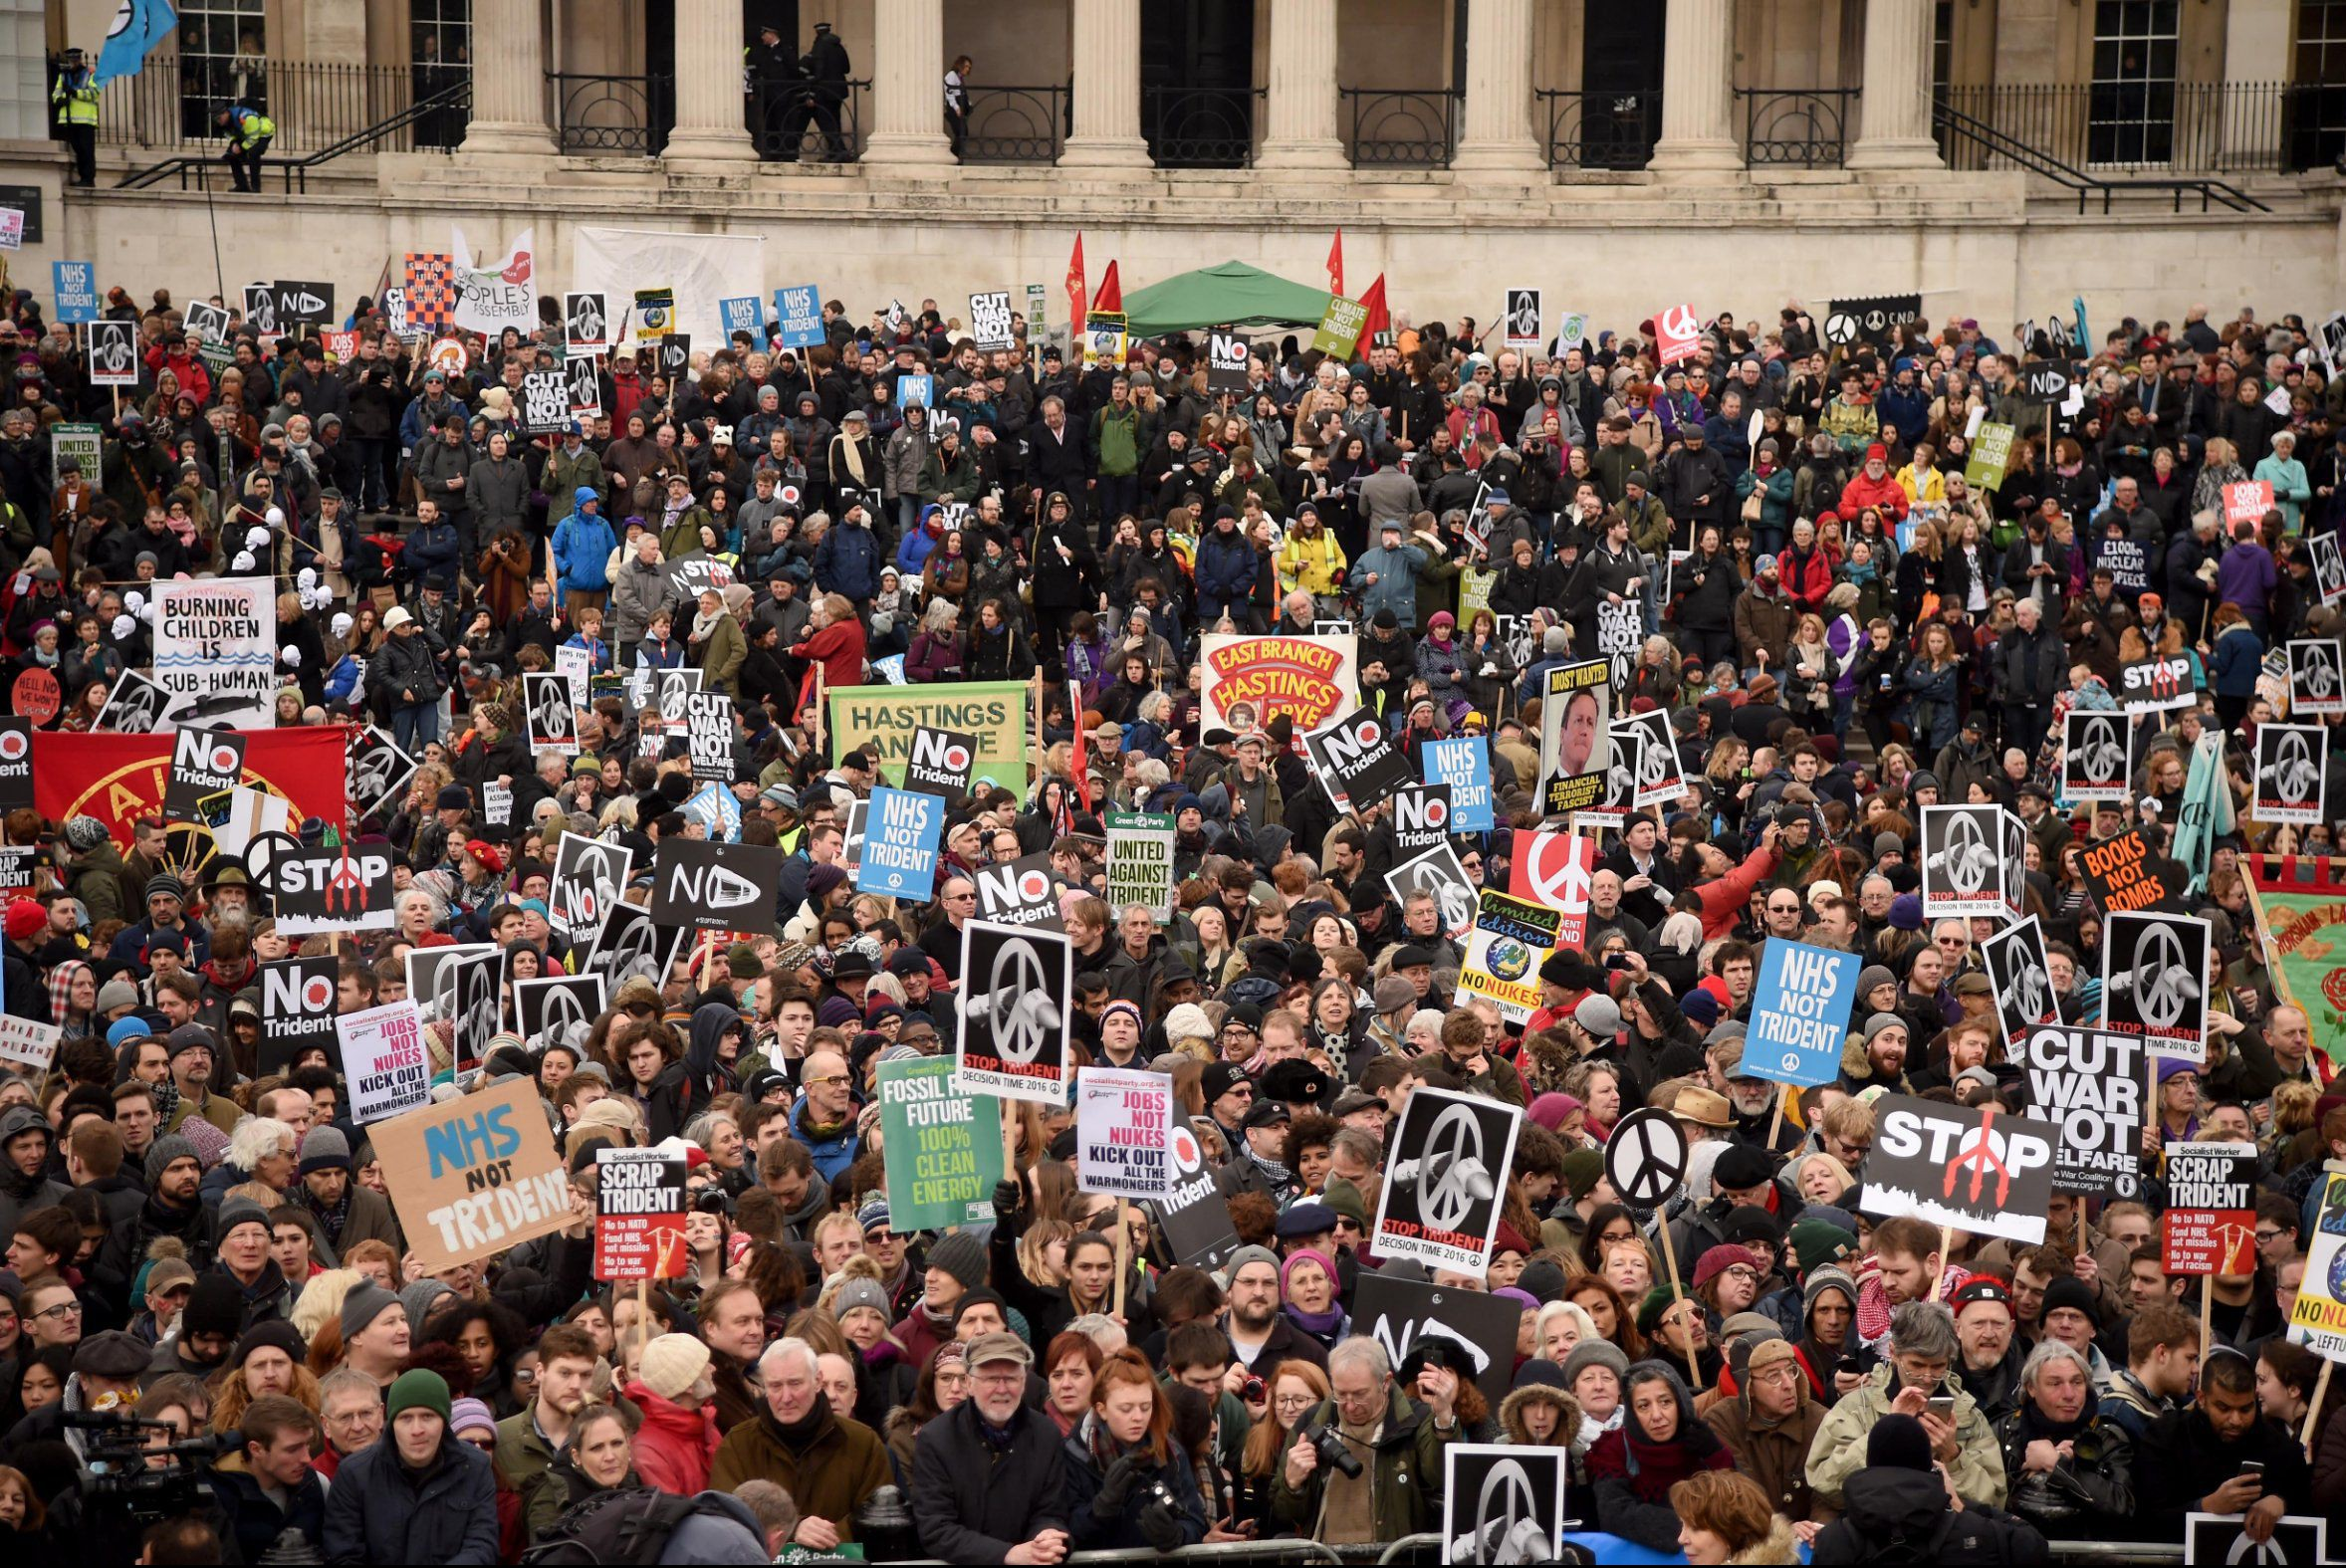 Mandatory Credit: Photo by Finnbarr Webster/REX/Shutterstock (5599268n) The Stop Trident protest in Trafalgar Square CND anti-Trident protest, London, Britain - 27 Feb 2016